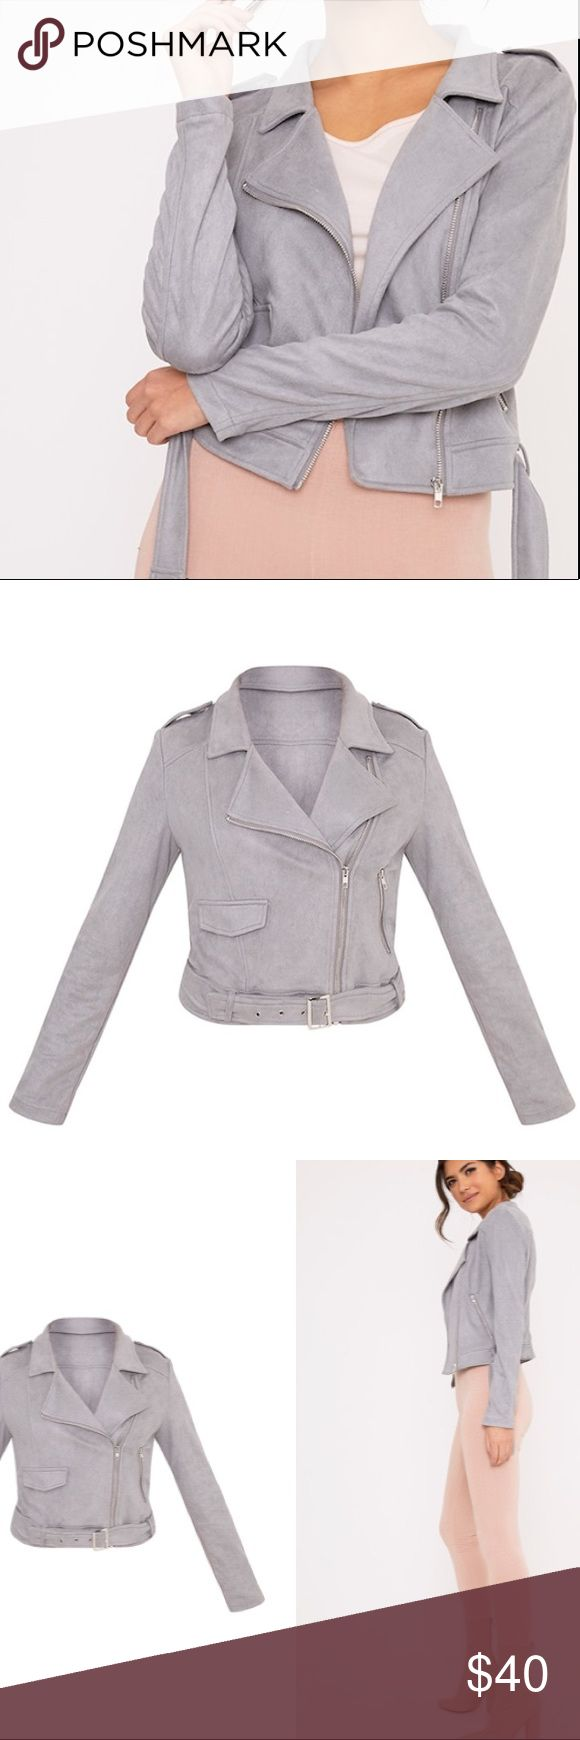 Grey Faux Suede Biker Jacket Worn once in excellent condition- Runs true to size. Every girl needs a faux suede jacket in their life- and this is the perfect wardrobe essential. Style with a pair of high waisted skinny jeans and ankle boots for a lust-worthy season look.! pretty little thing Jackets & Coats